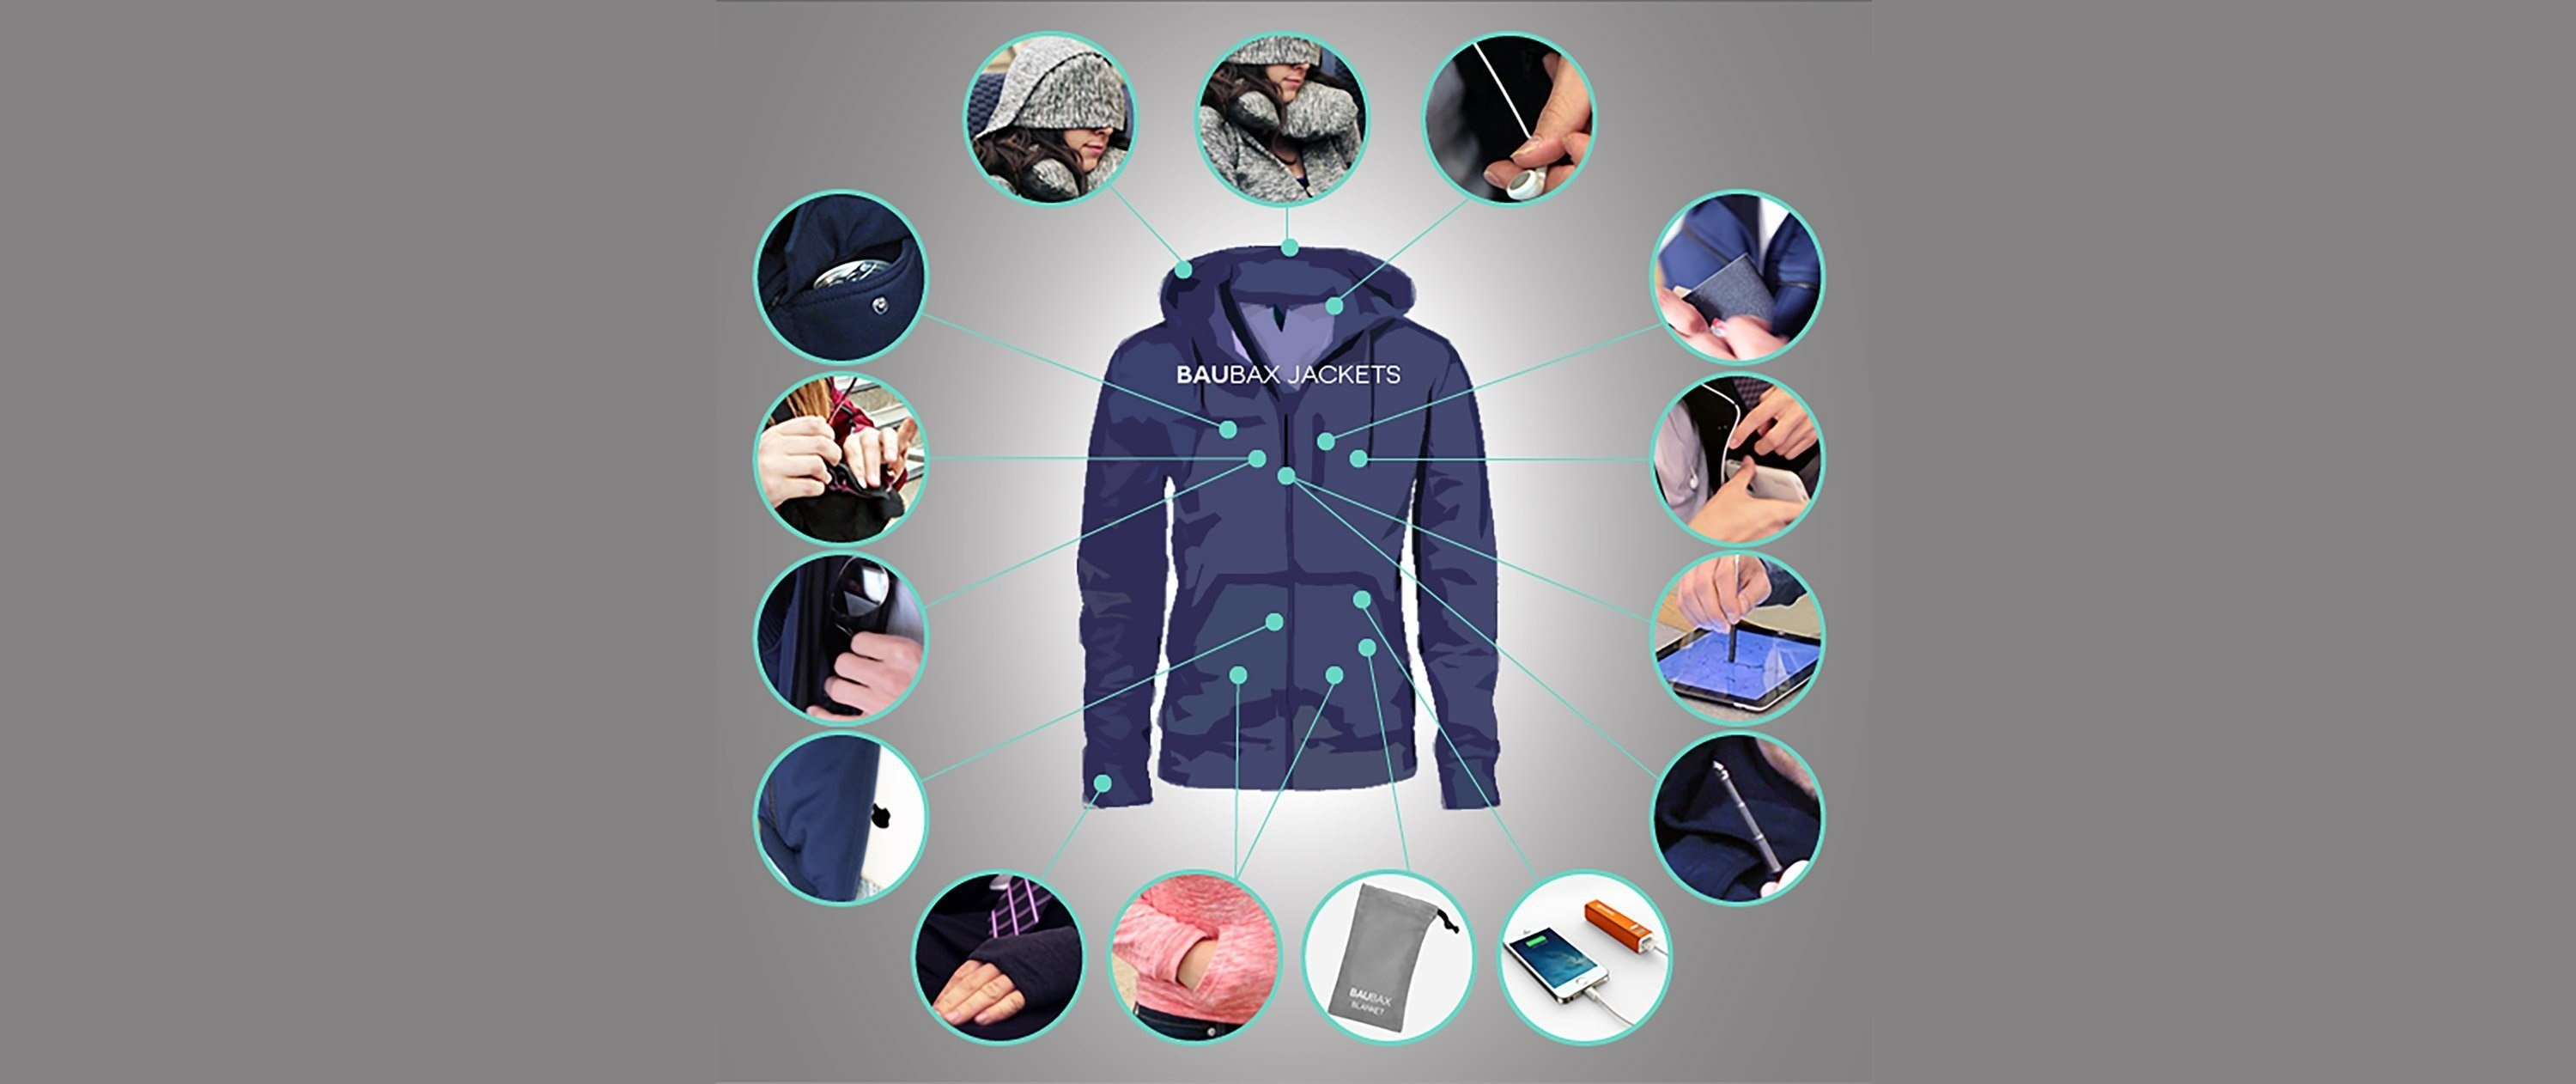 Needing $20,000, Hiral Sanghavi raised $9 million on his Kickstarter campaign to fund BauBax, a travel jacket. The jacket features 15 built-in features.